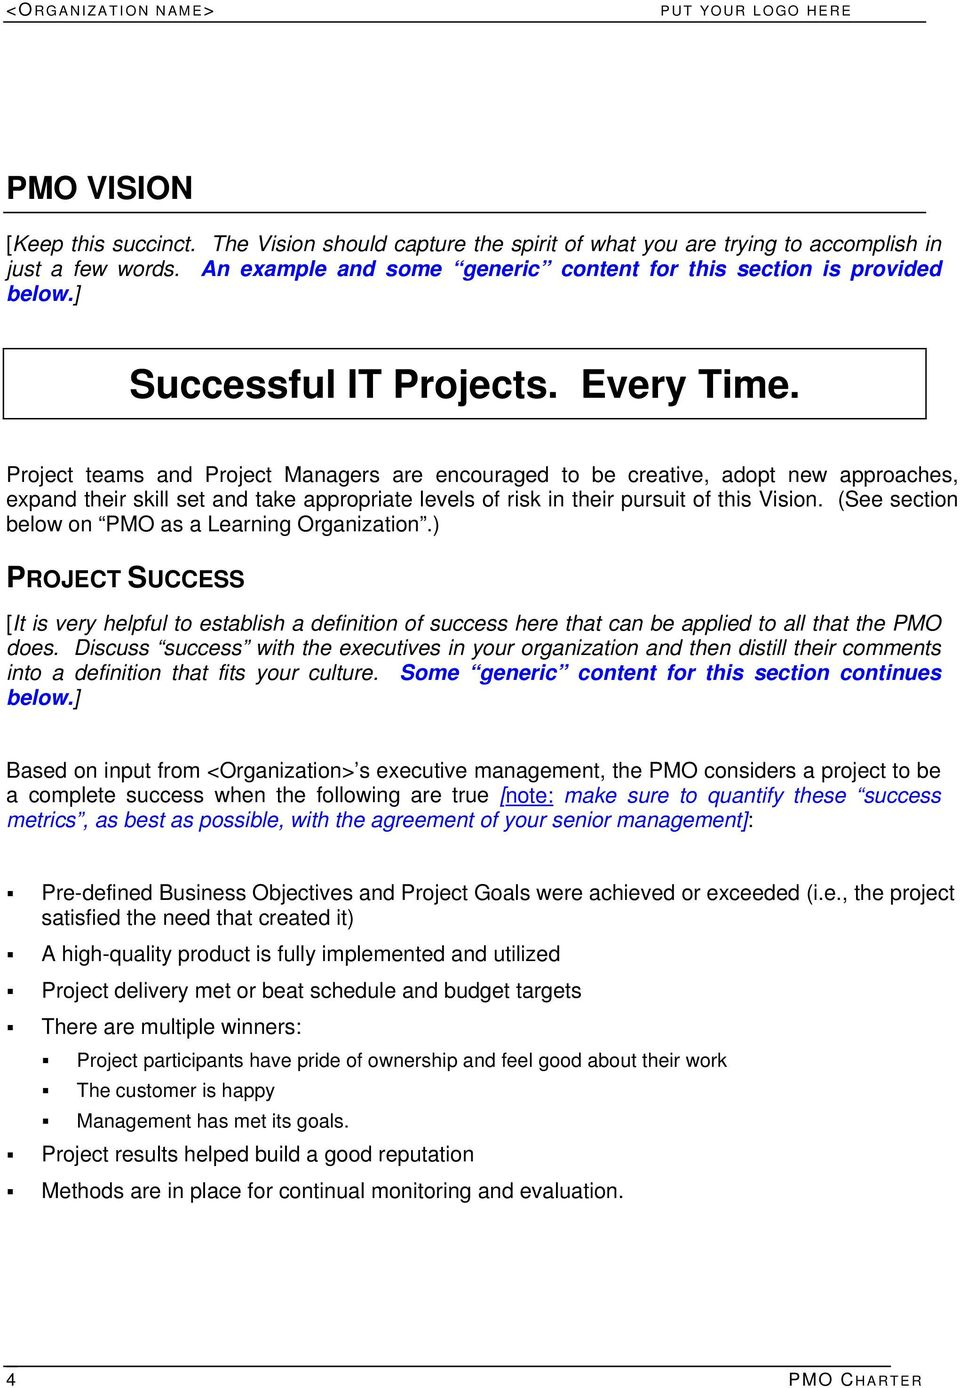 IT PROJECT MANAGEMENT OFFICE PMO CHARTER Information